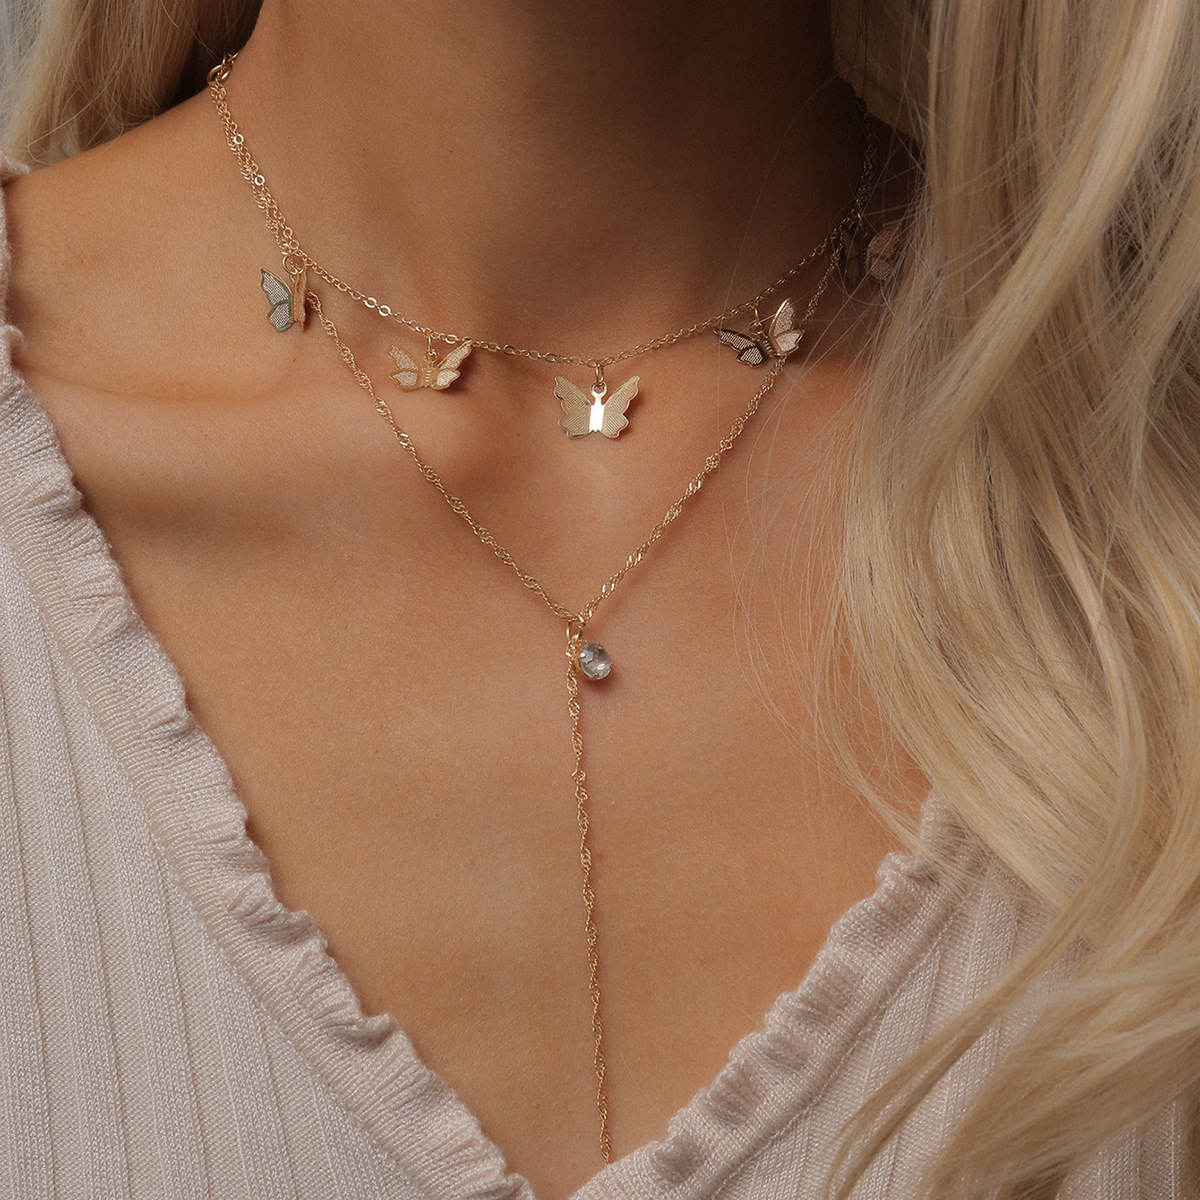 Fashion Gold Color Butterflies Pendant Tassel Clavicle Chain Women Choker Necklace Rhinestone Short Necklaces Female Simple New